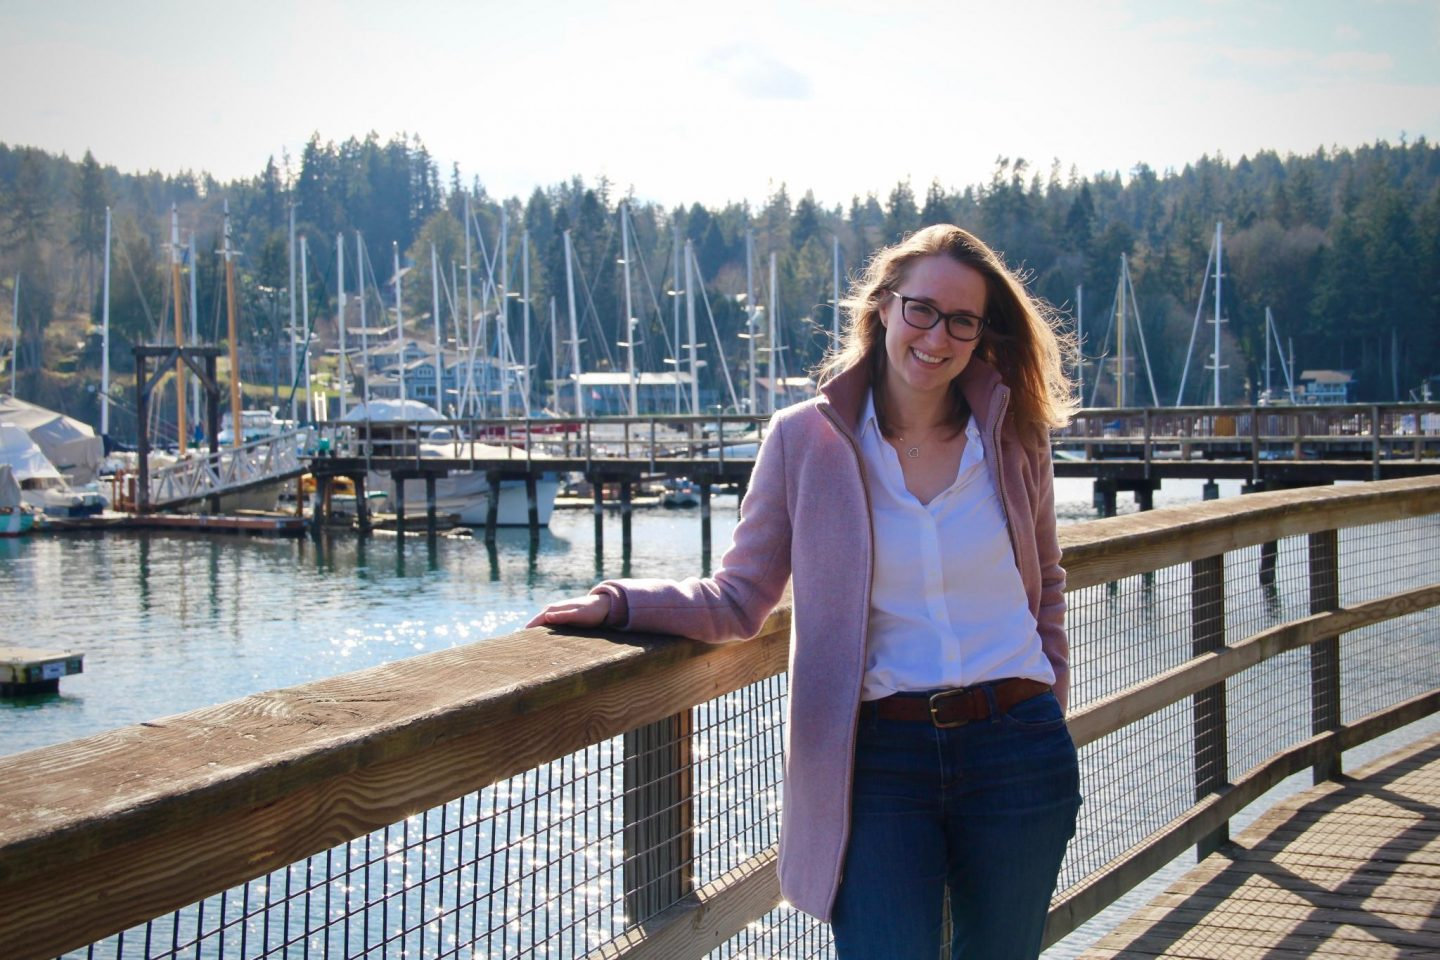 Bainbridge Island, Washington - The Spectacular Adventurer